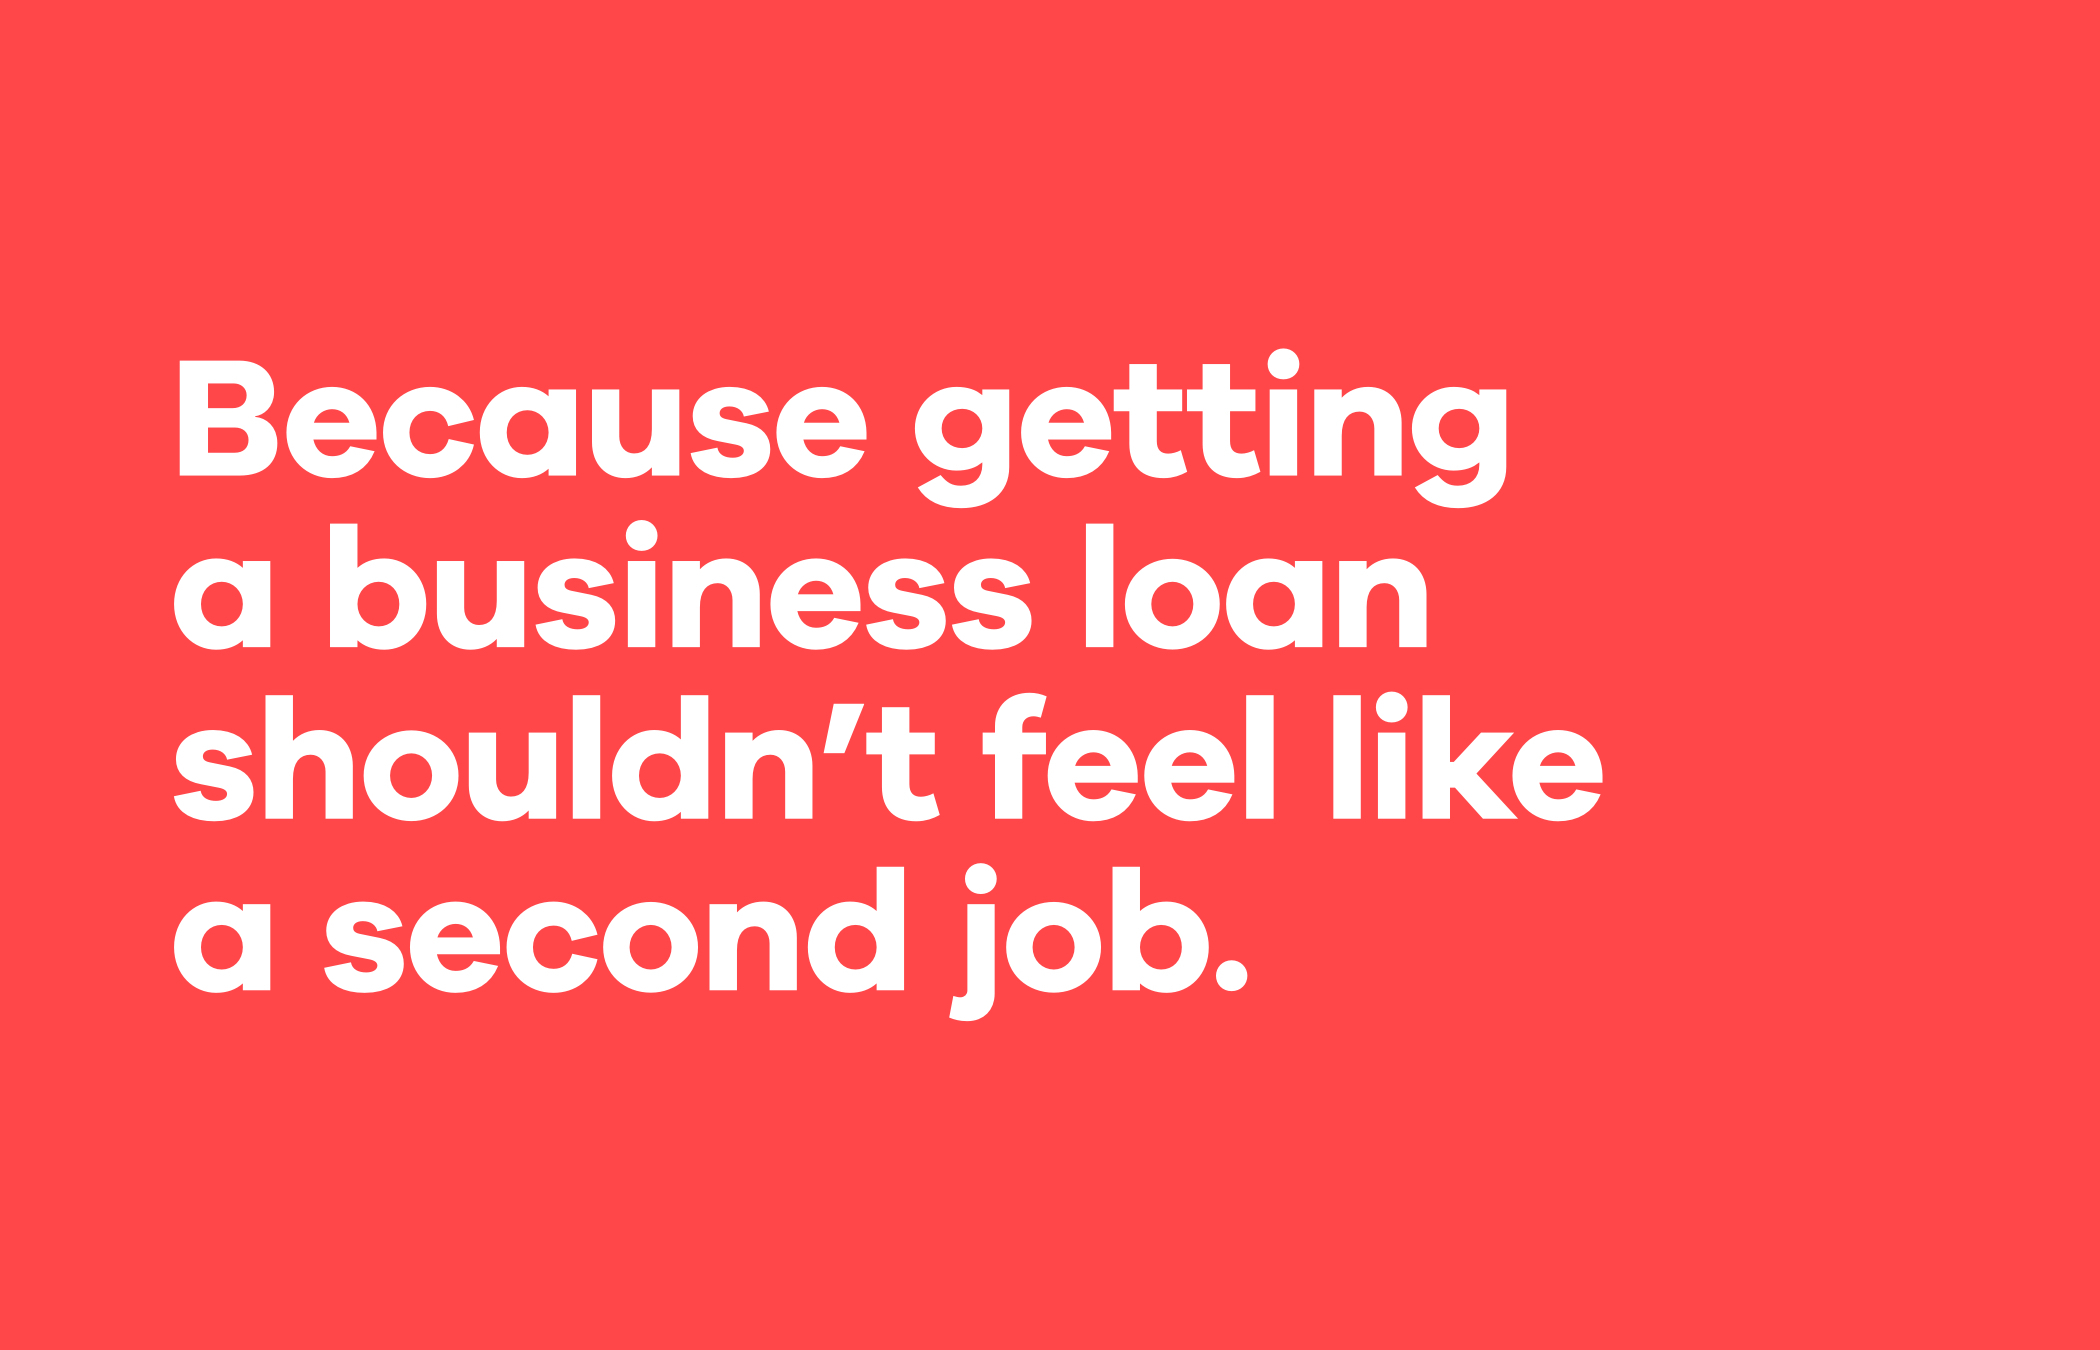 """The text """"Because getting a business loan shouldn't feel like a second job."""" in bold white letters on a red background."""